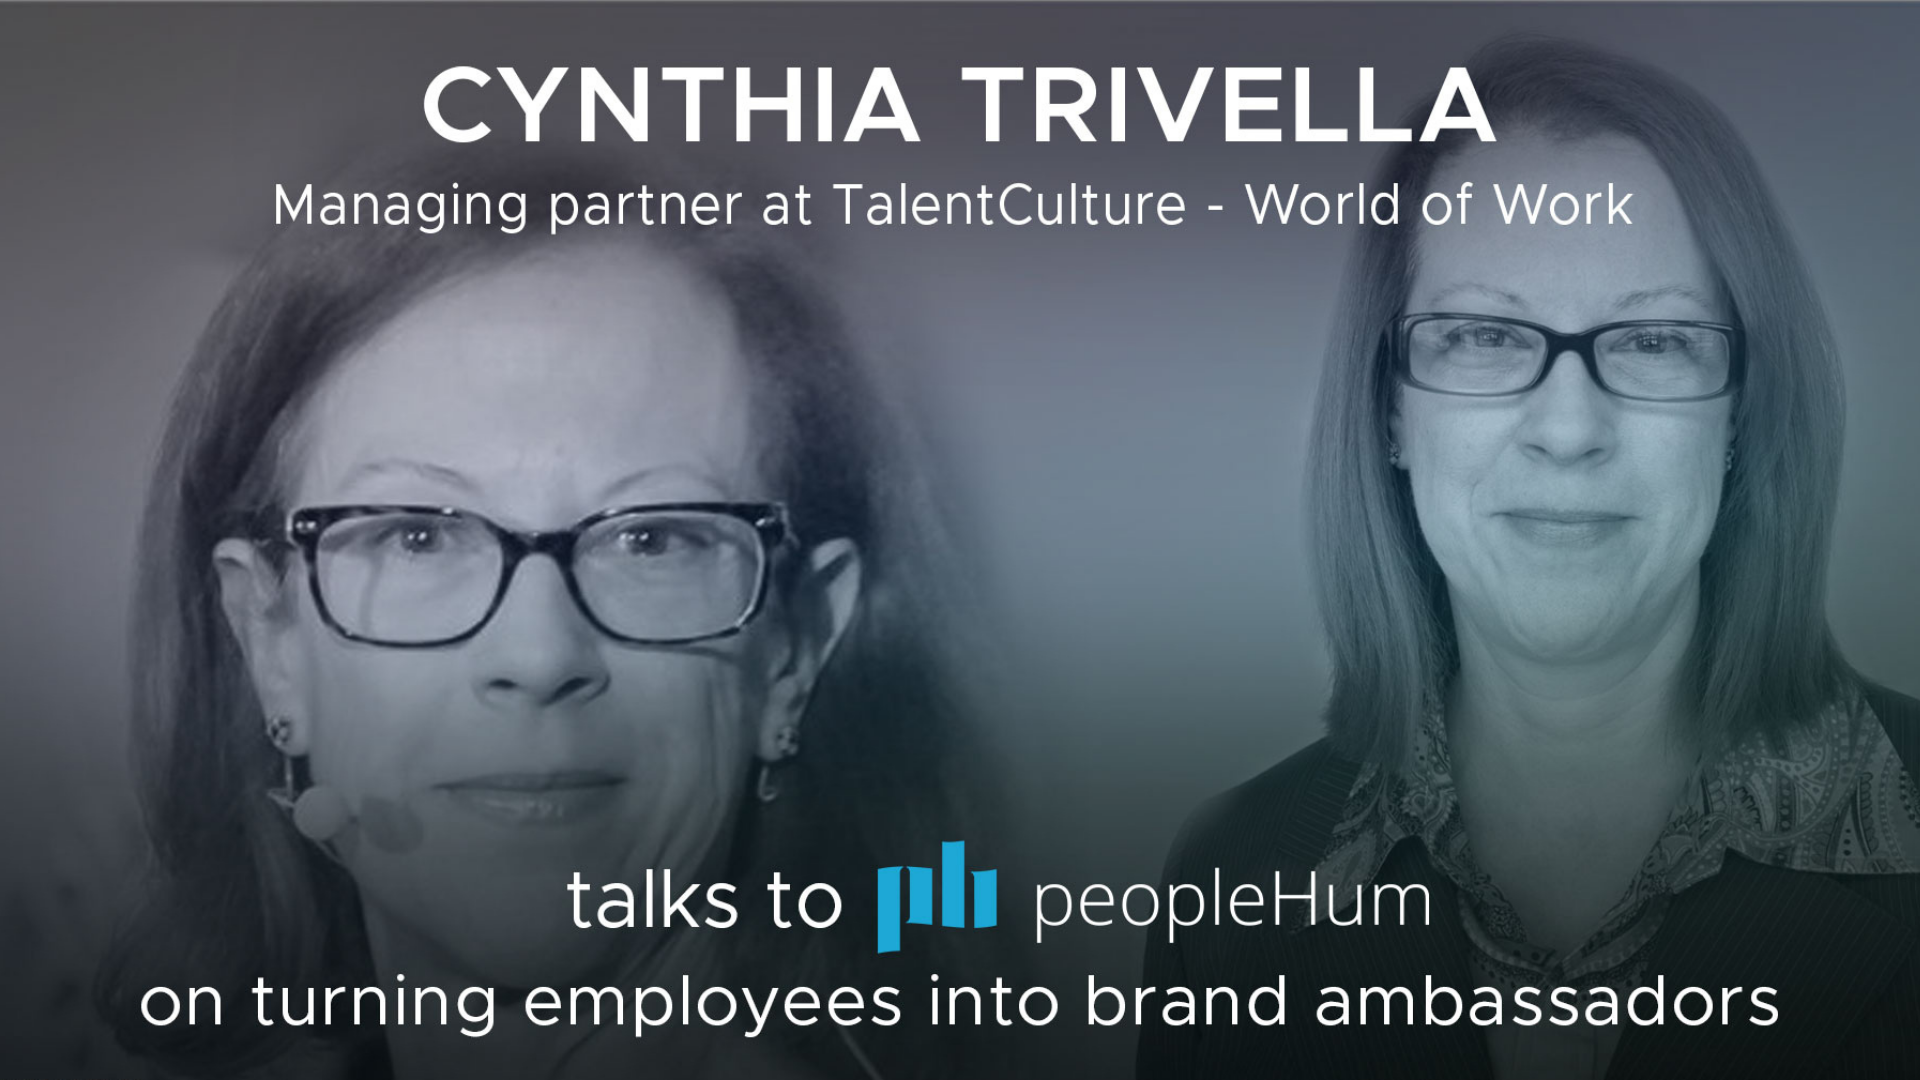 Hiring and recruitment made better - Cynthia Trivella [Interview]